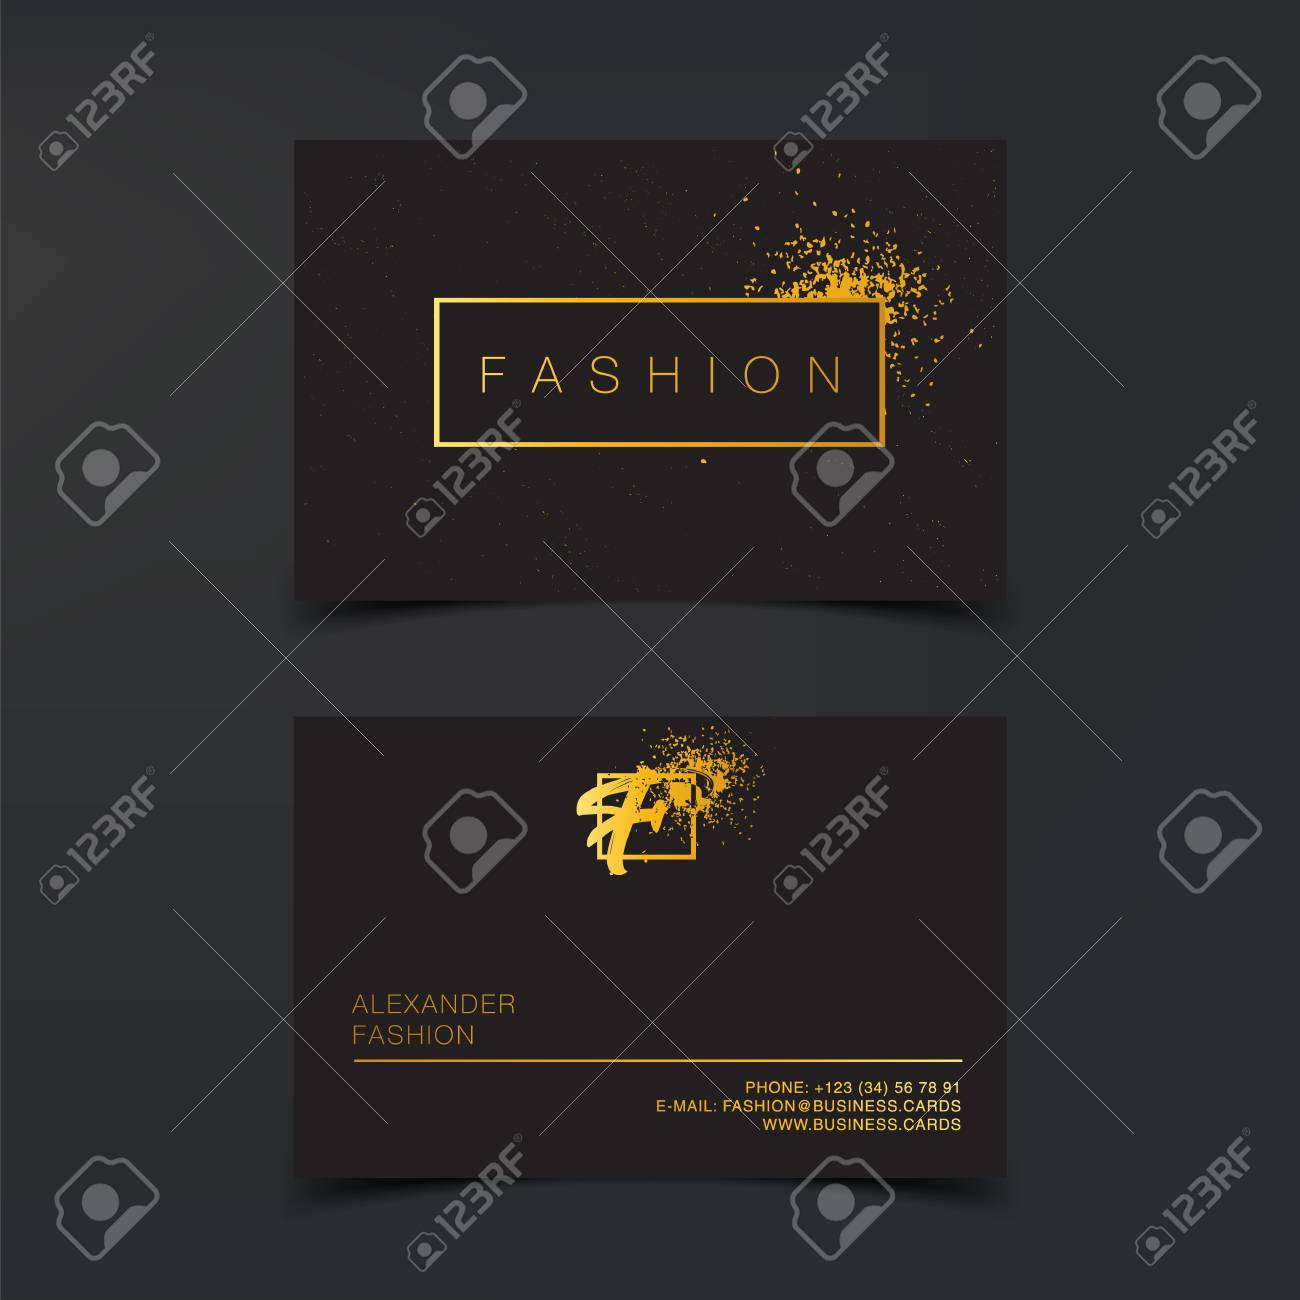 Luxury Fashion Business Cards Vector Template Banner And Cover Royalty Free Cliparts Vectors And Stock Illustration Image 94662385